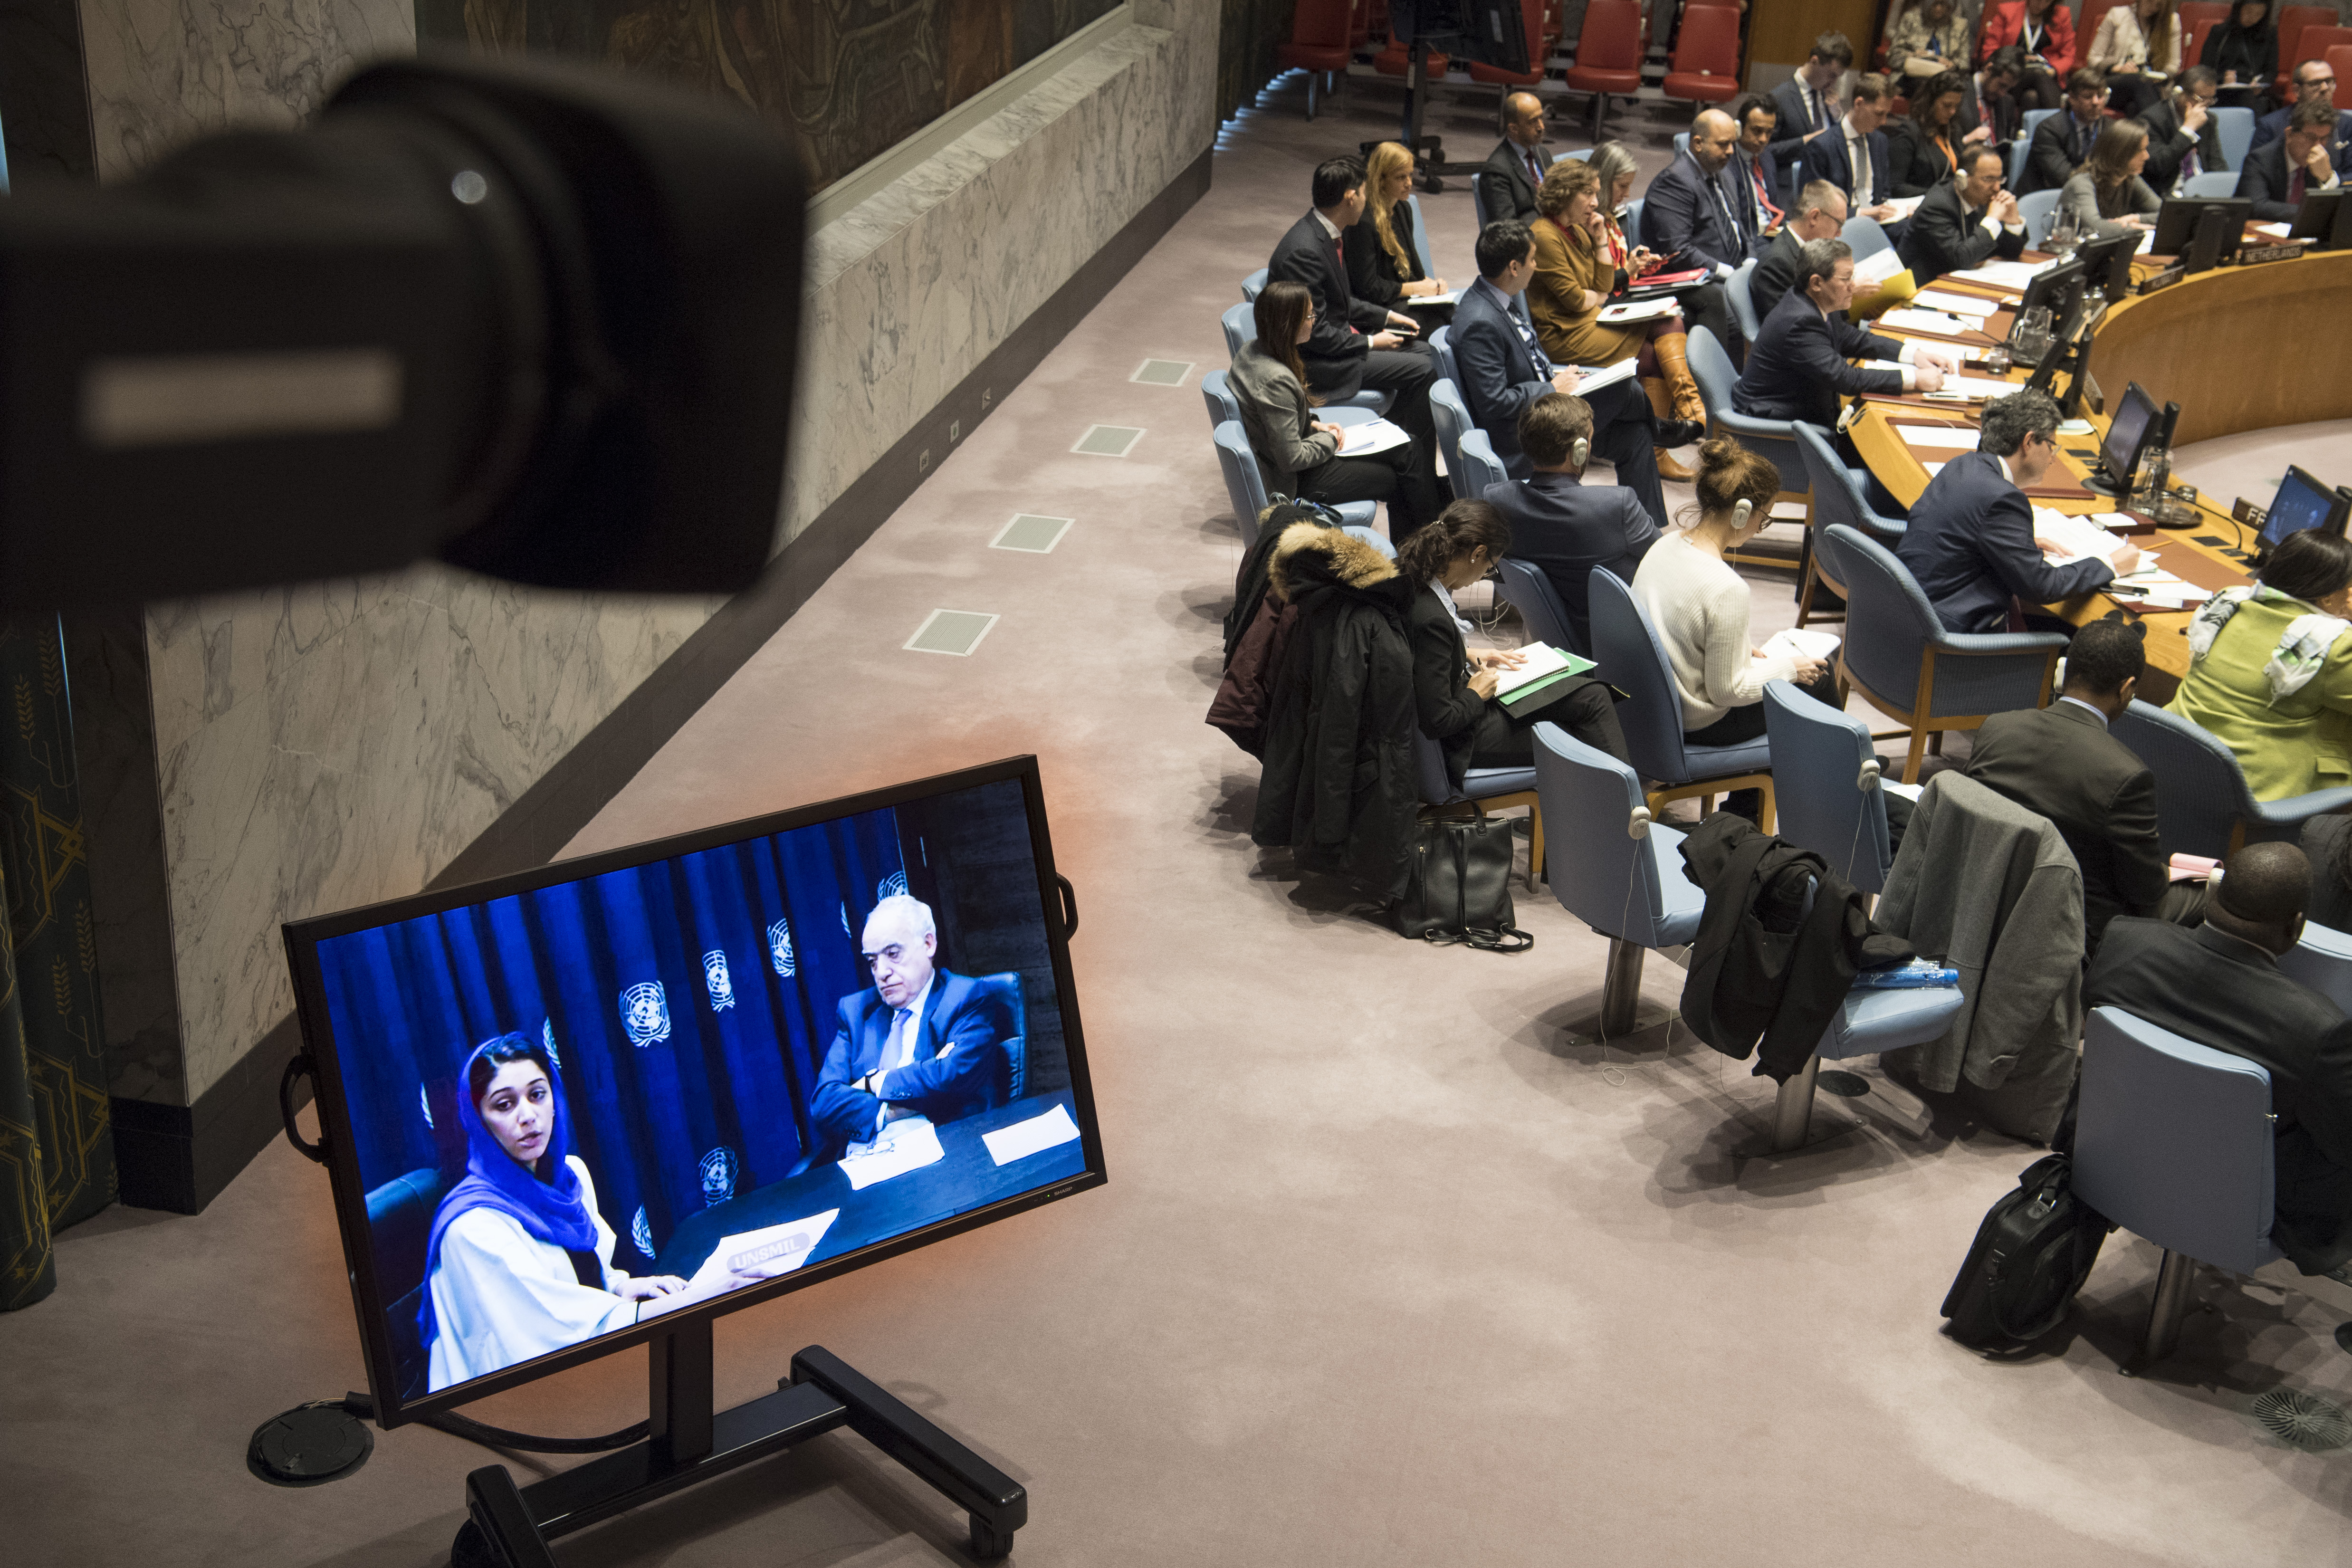 UN Security Council Briefing on Libya by Hajer Sharief